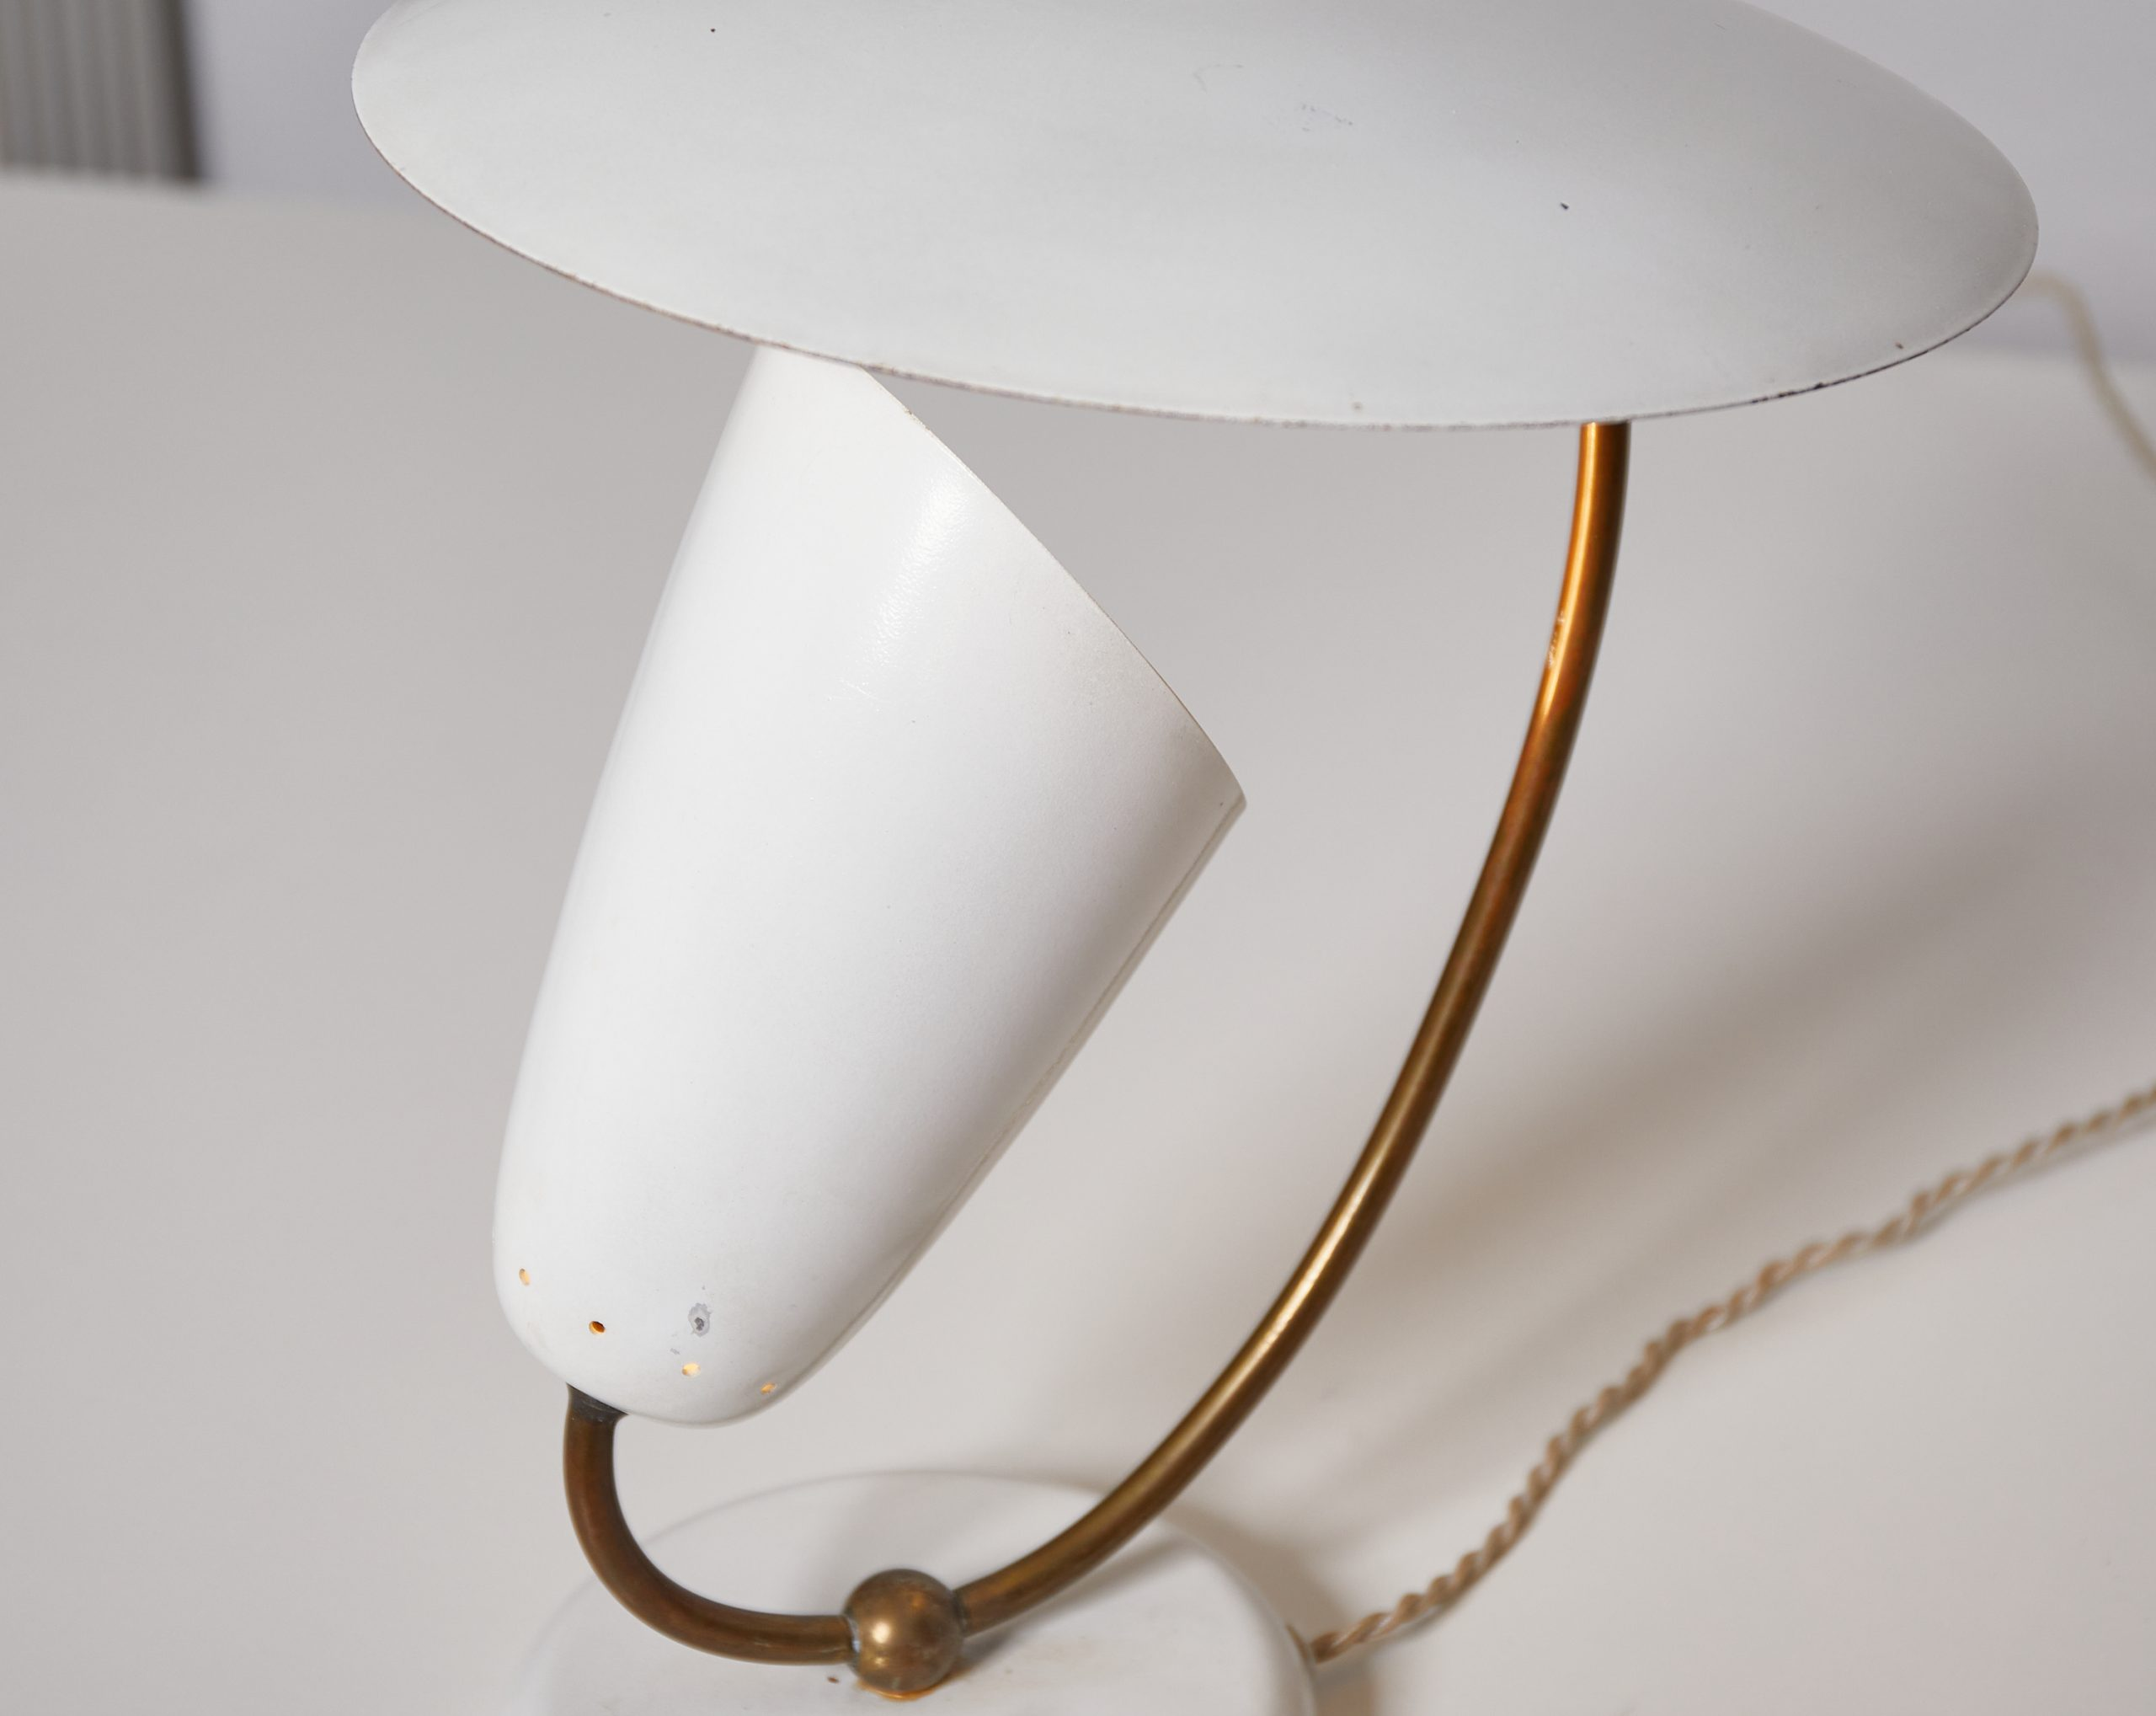 brass-and-enameled-metal-table-lamp-switzerland-1950-image-03